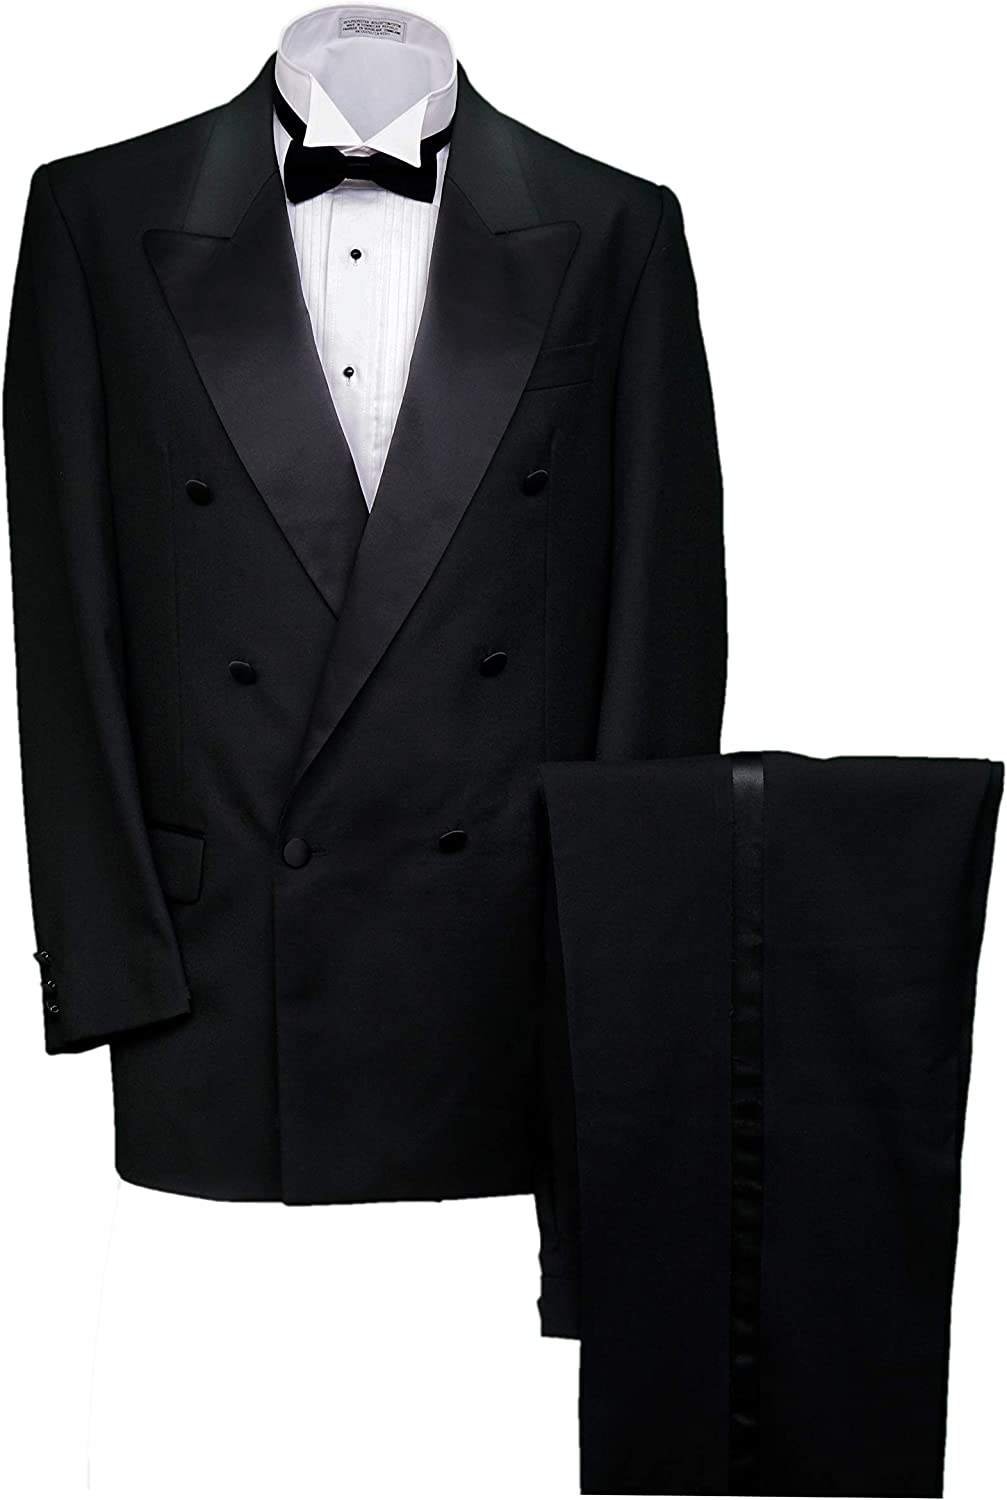 Broadway Tuxmakers Men's Double Breasted Peak Lapel New sales Tuxedo New Free Shipping Black